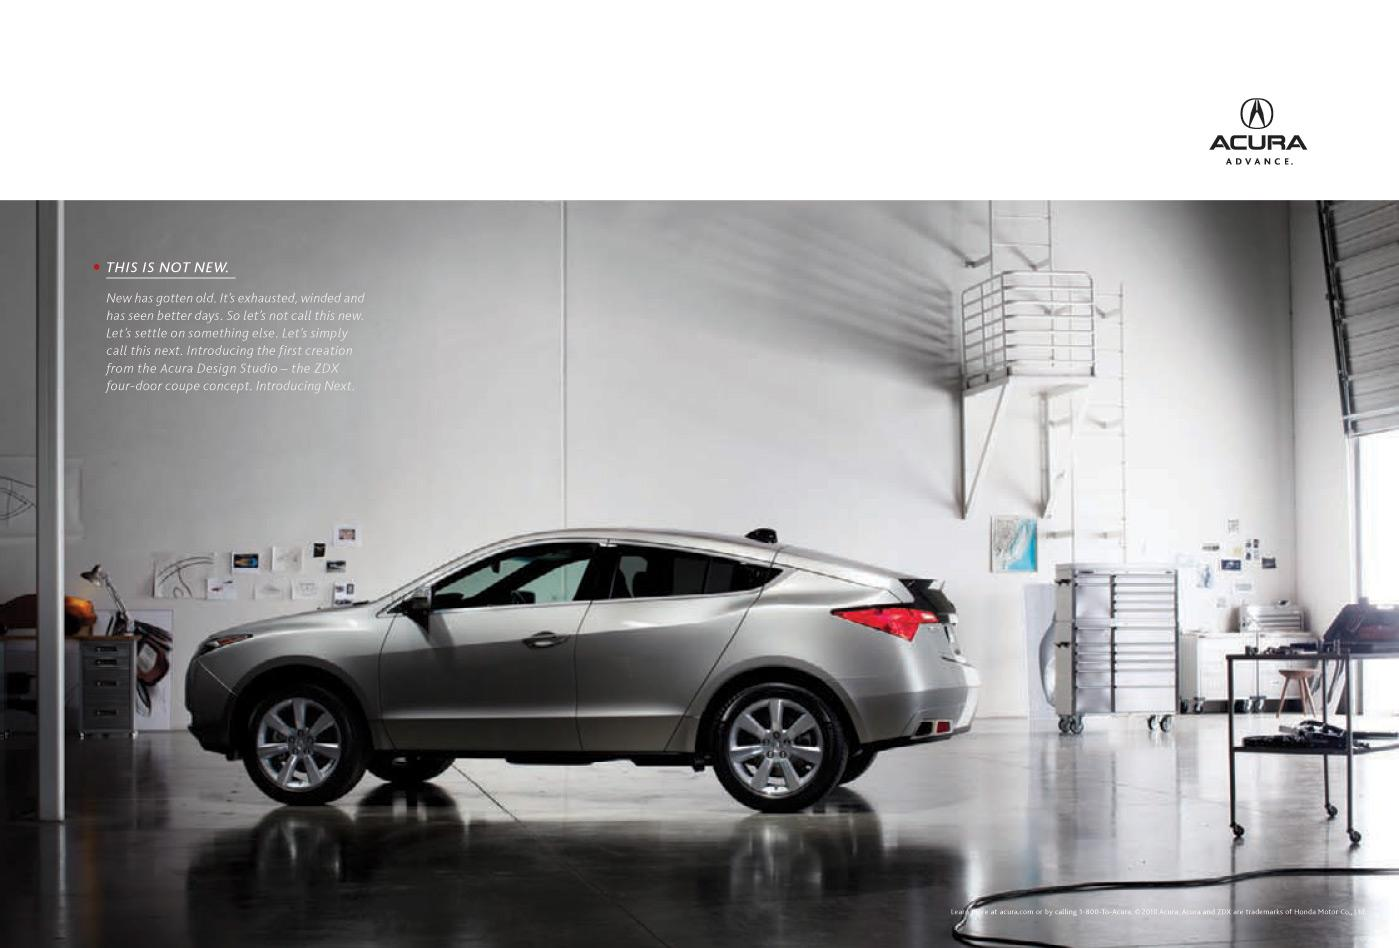 Honda Print Ad -  This is Not New